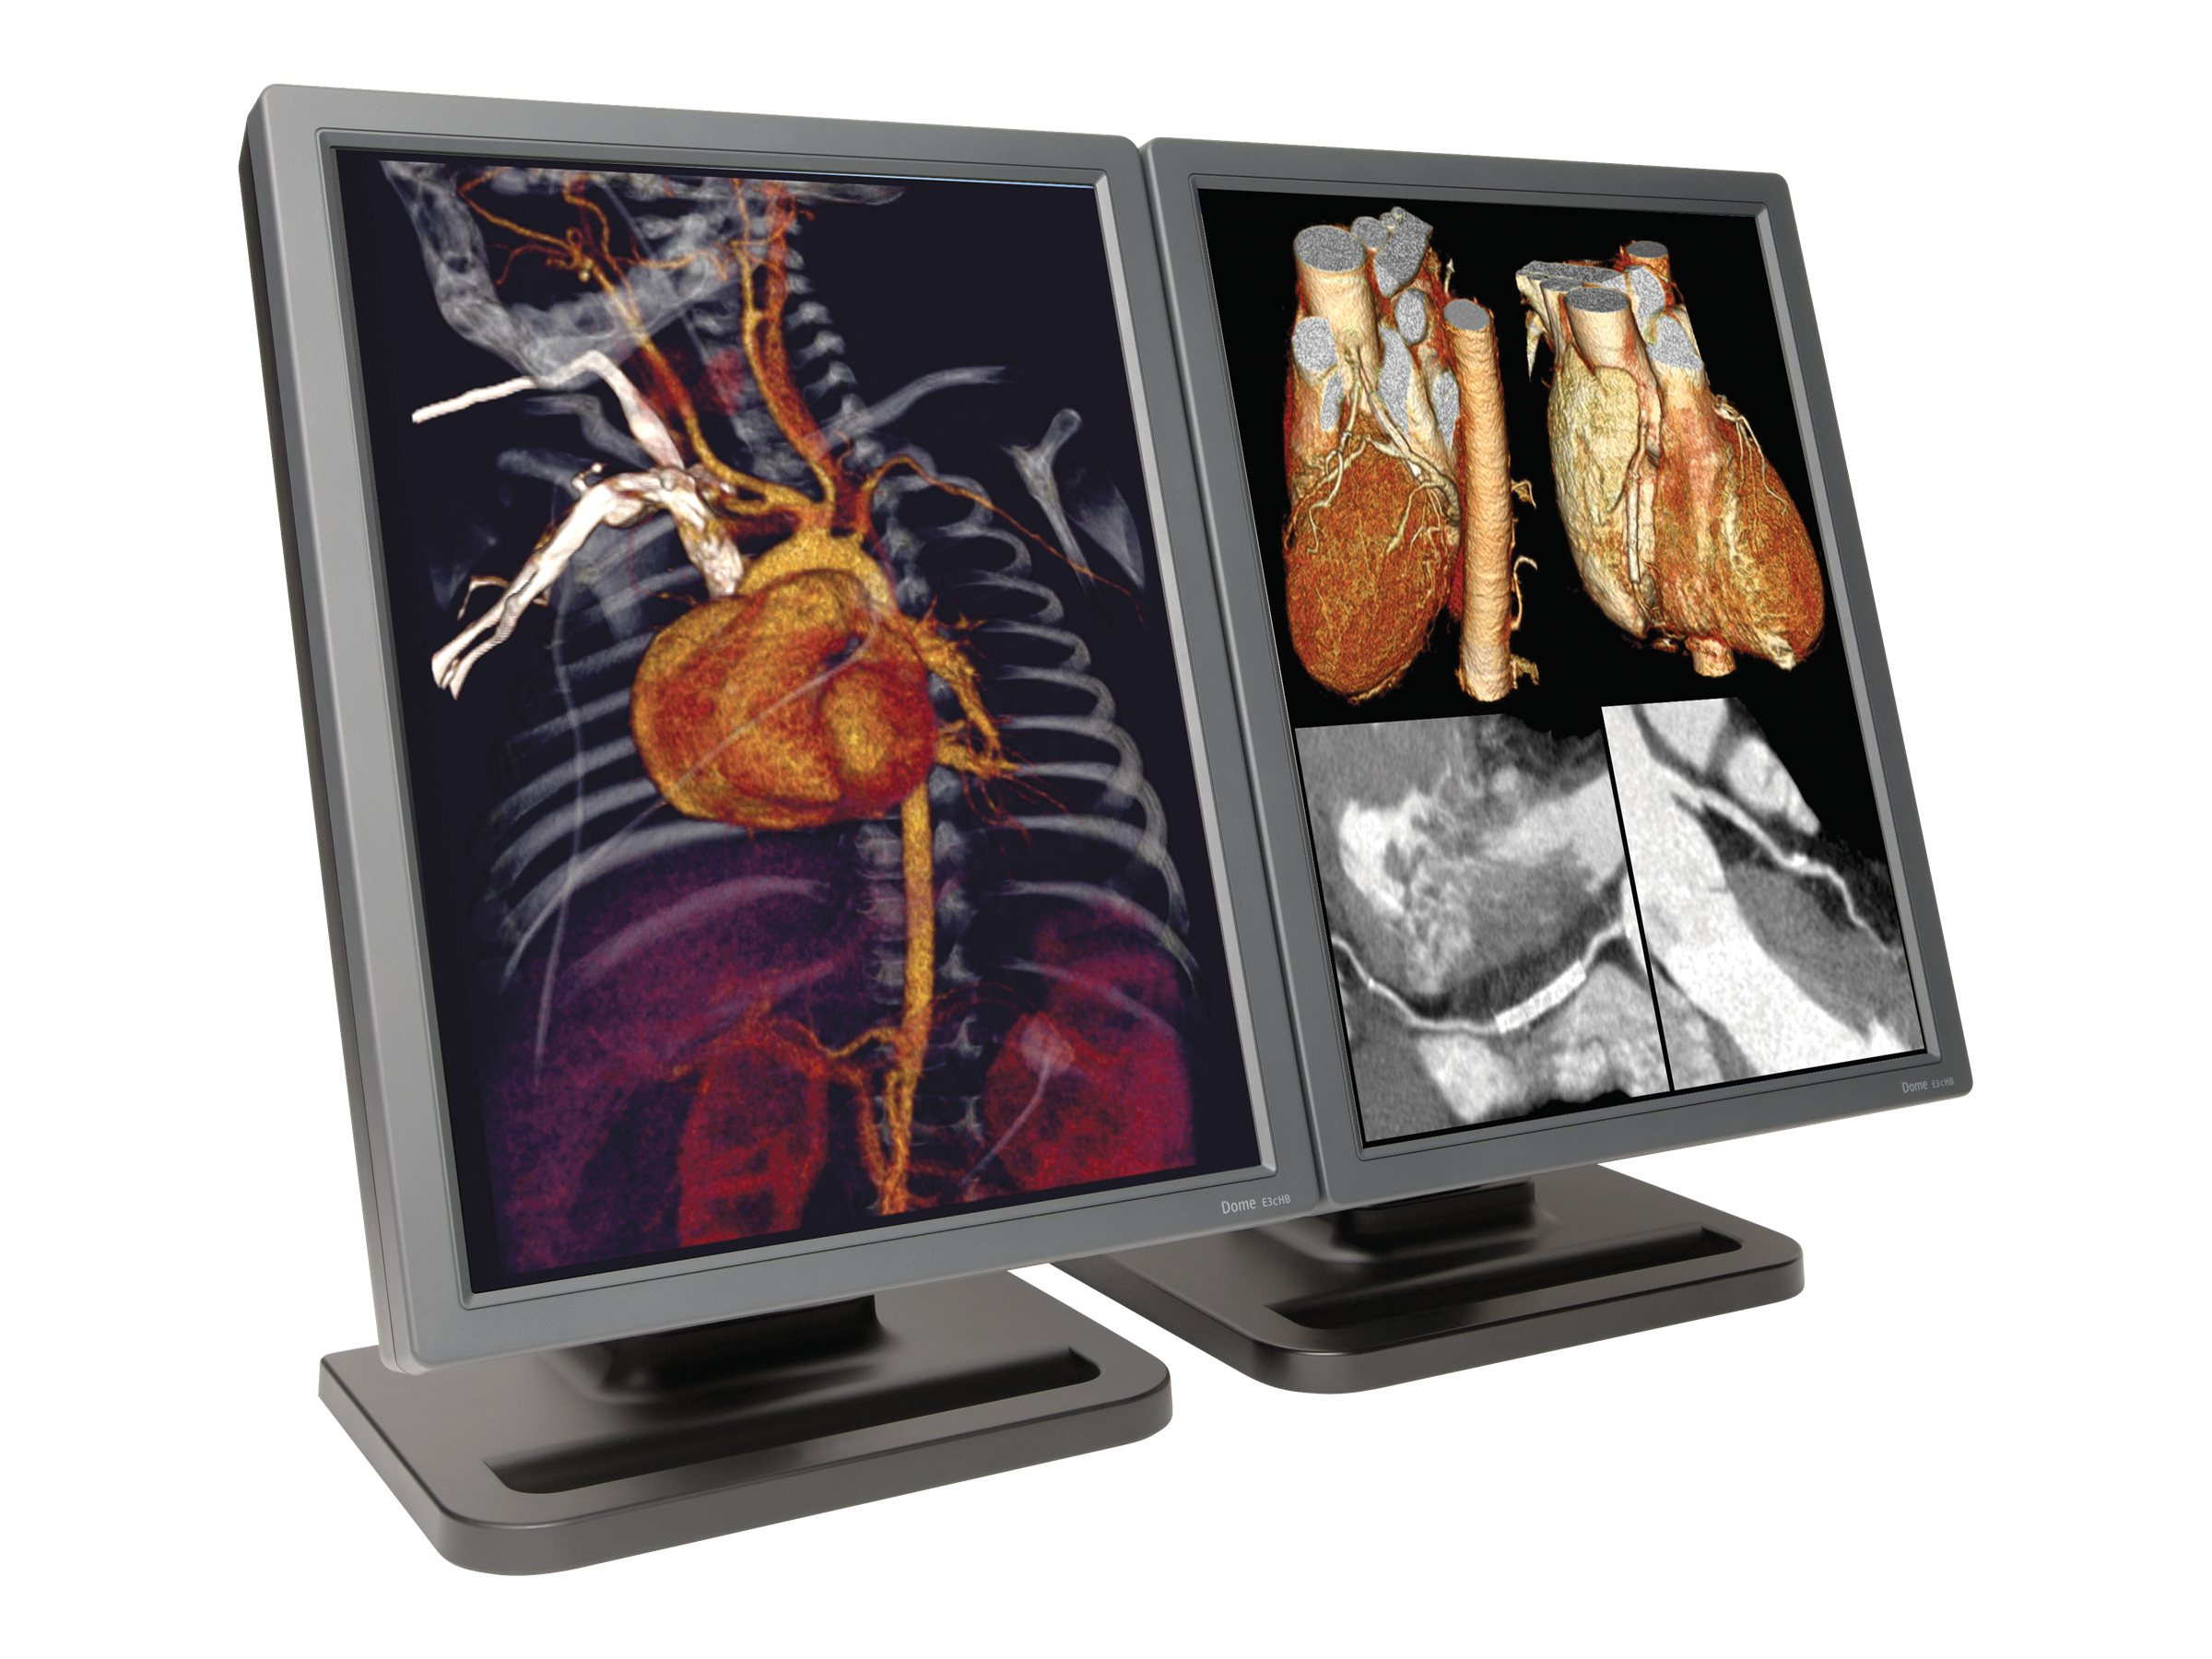 NDS 21.3 Dome E3c High-Bright Dual-Head Color Display, No Video Card, 997-5703-00-2NN, 13081524, Monitors - Medical